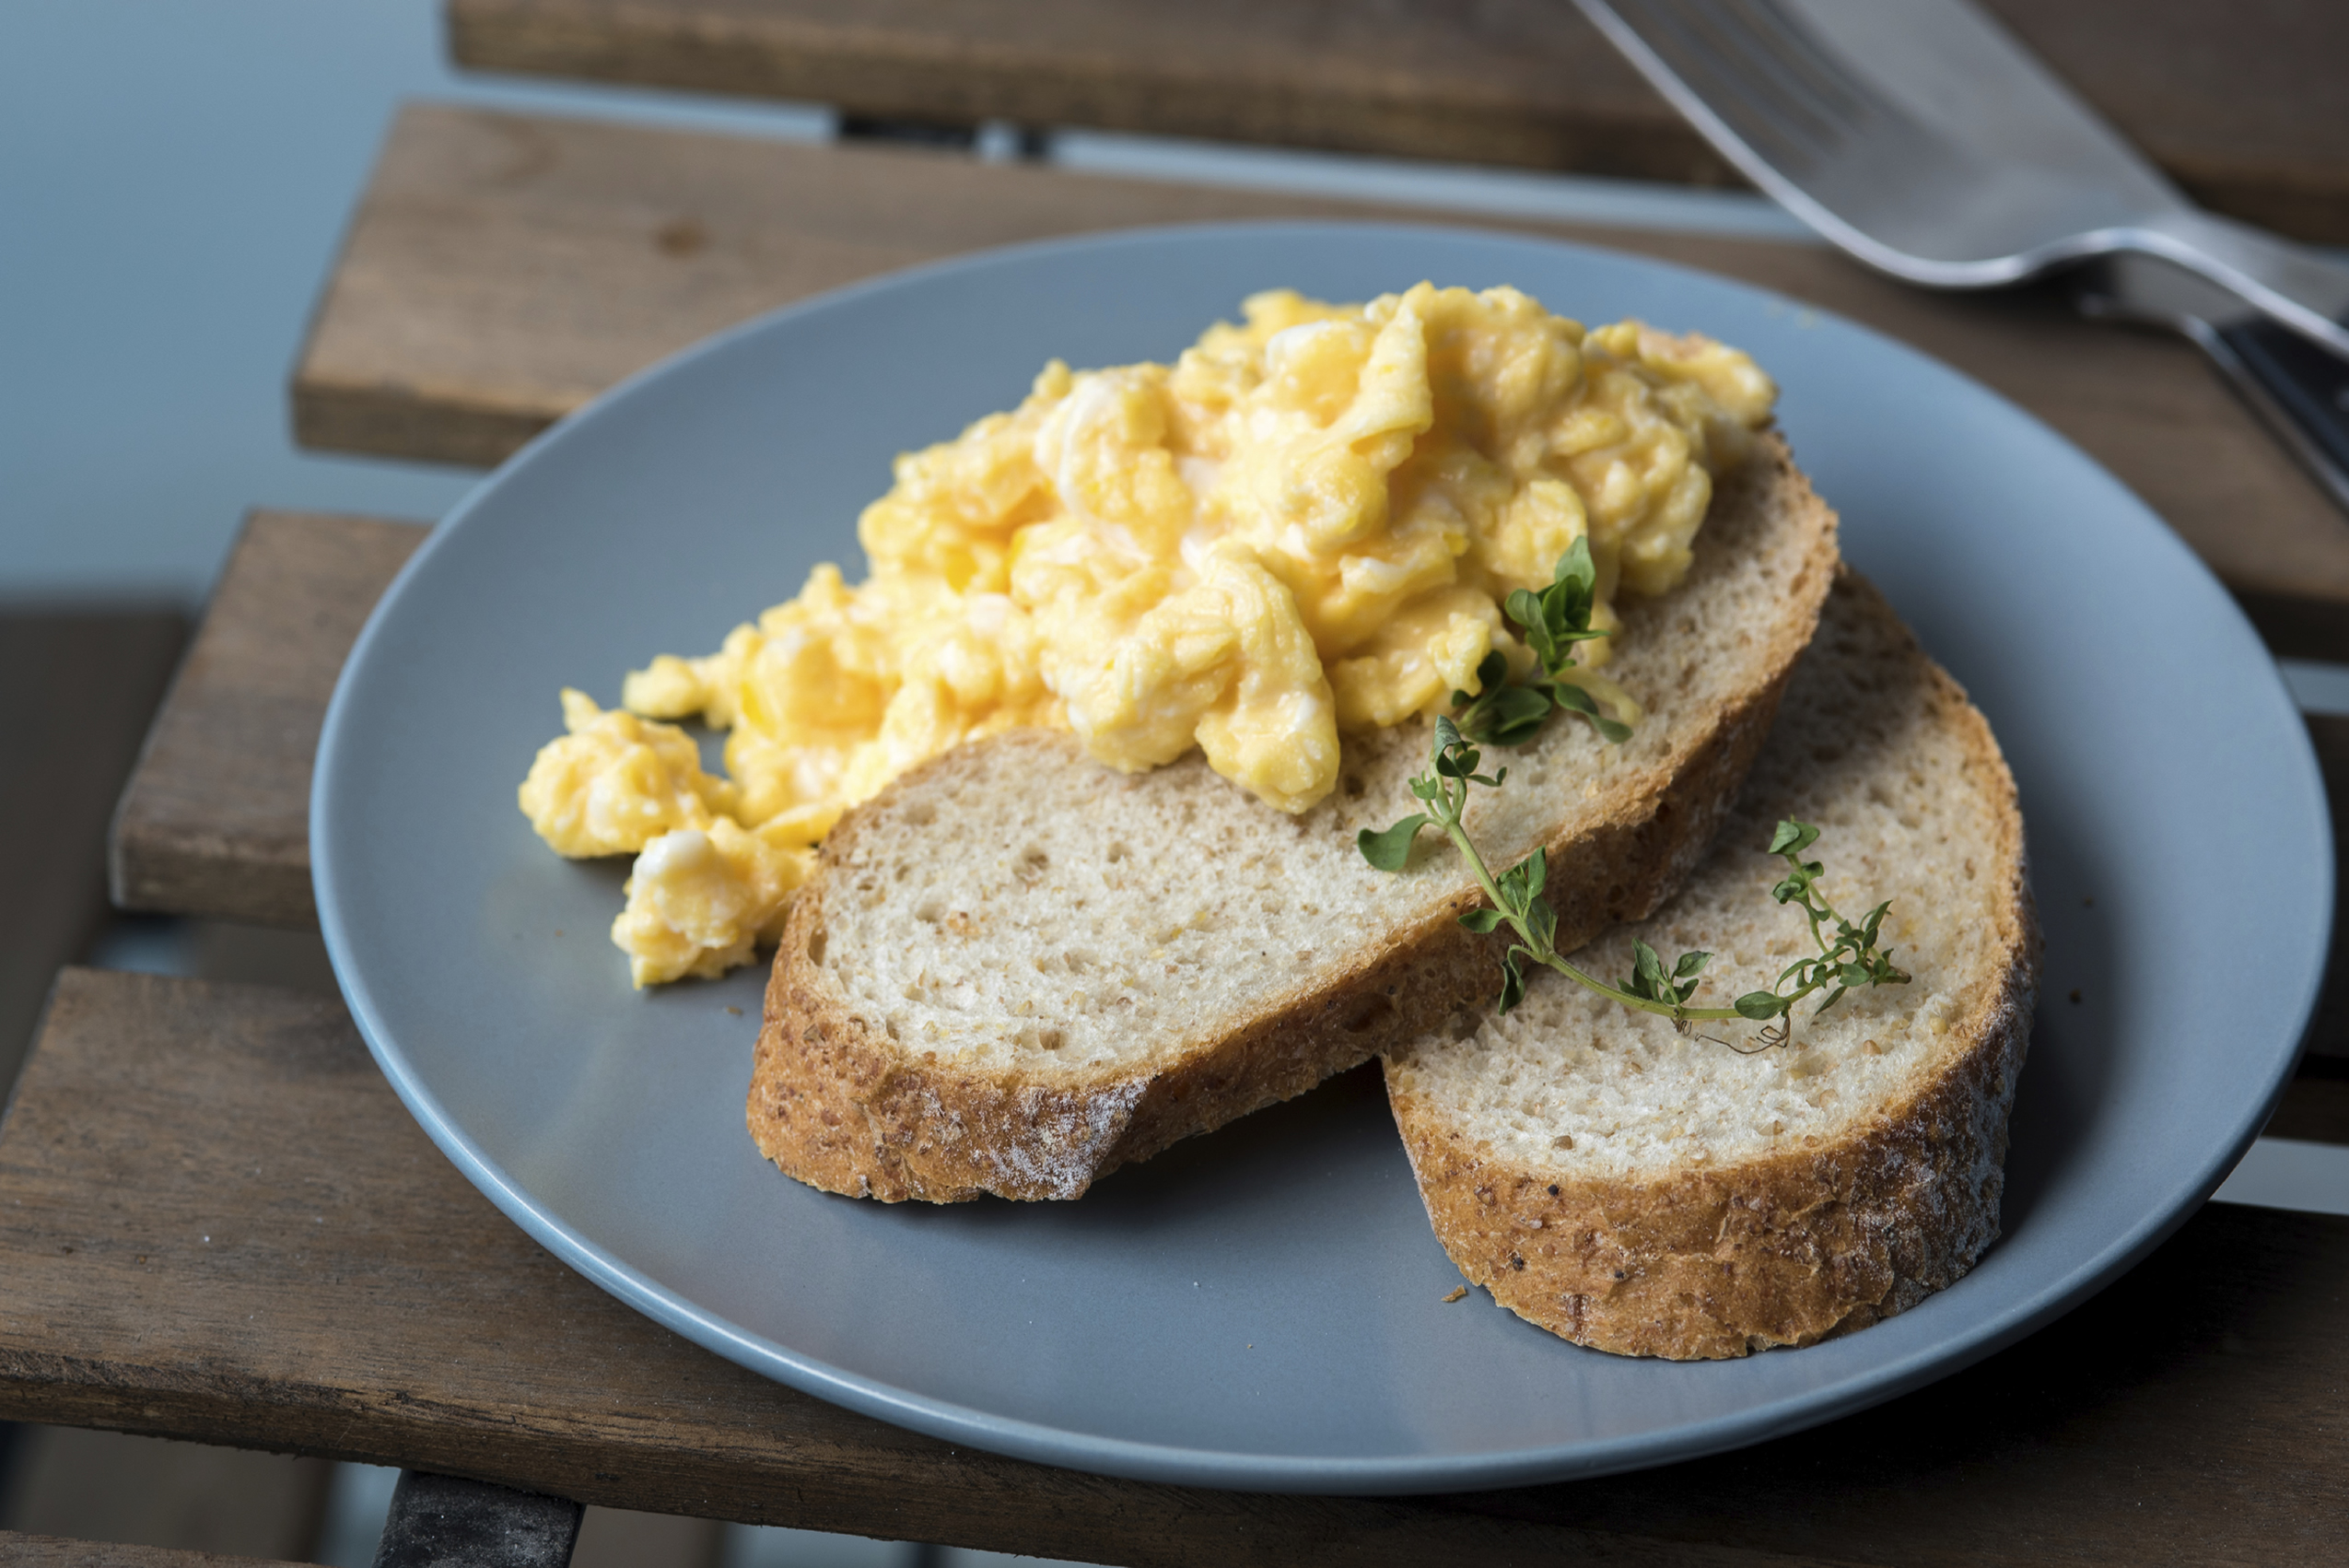 Scrabled Egg on Wholegrain Toast